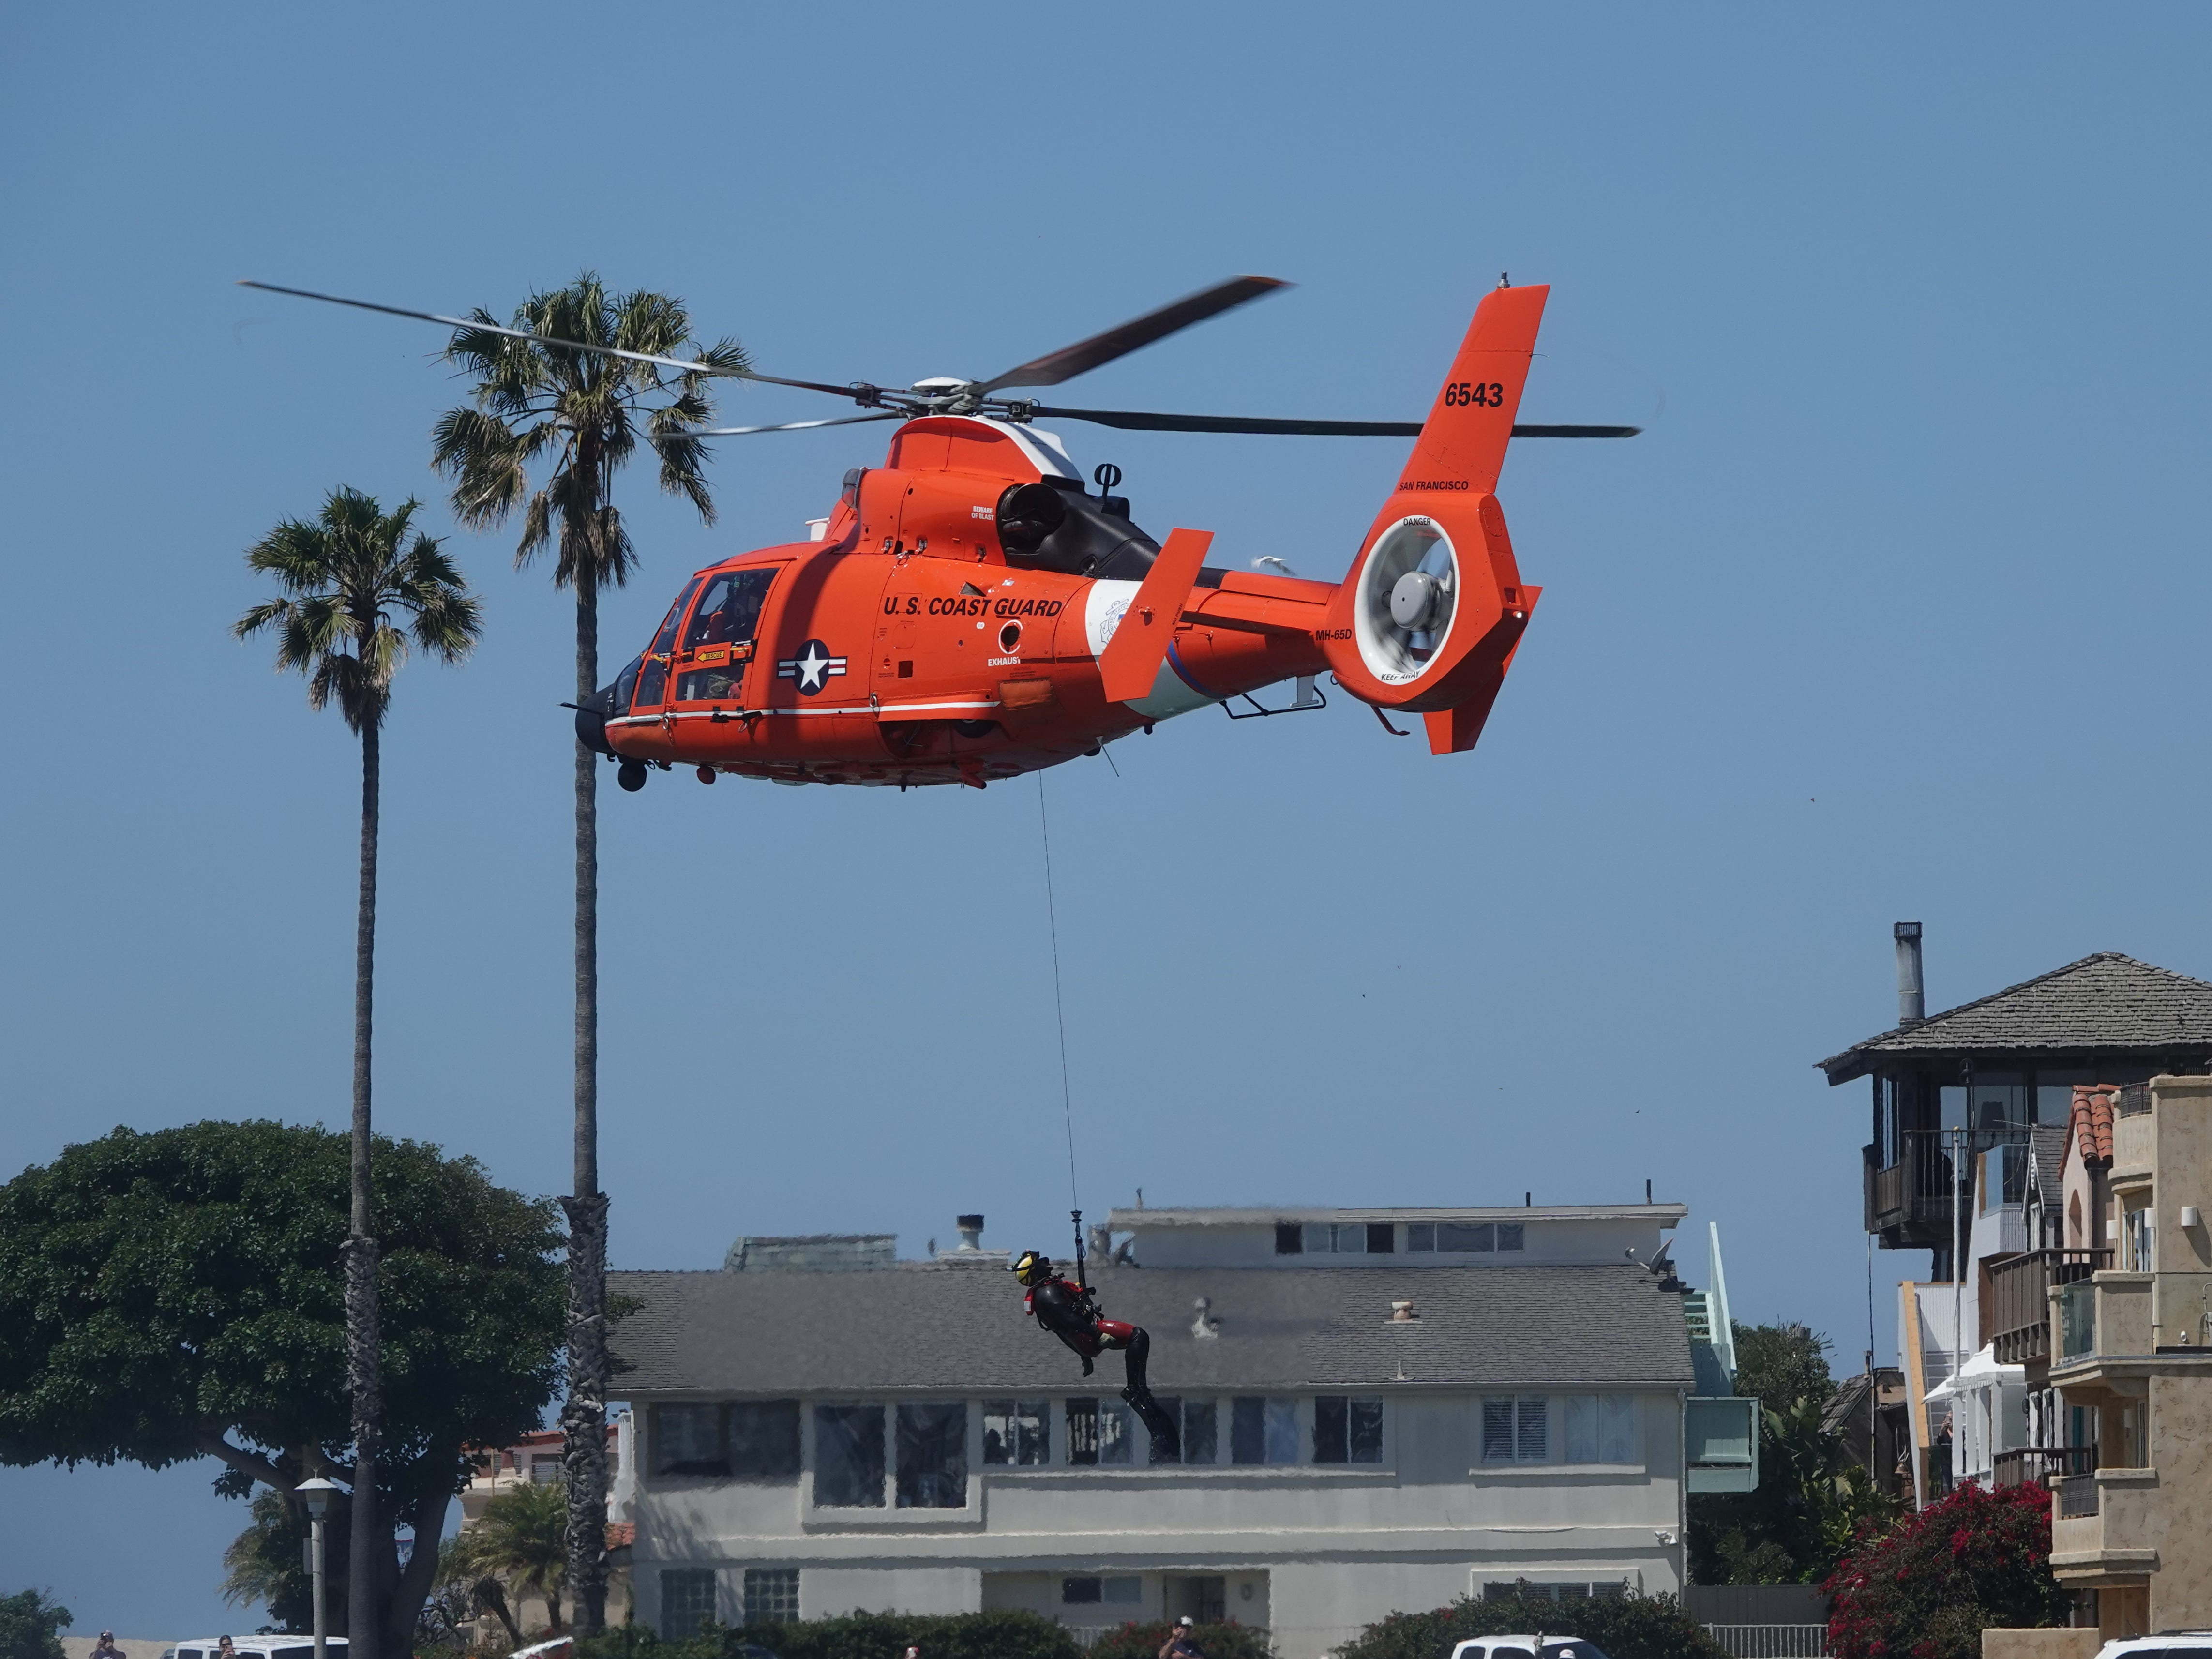 A U.S. Coast Guard rescue swimmer is hoisted into a helicopter after a mock rescue during the Safe Boating Expo at Channel Islands Harbor in Oxnard Saturday.